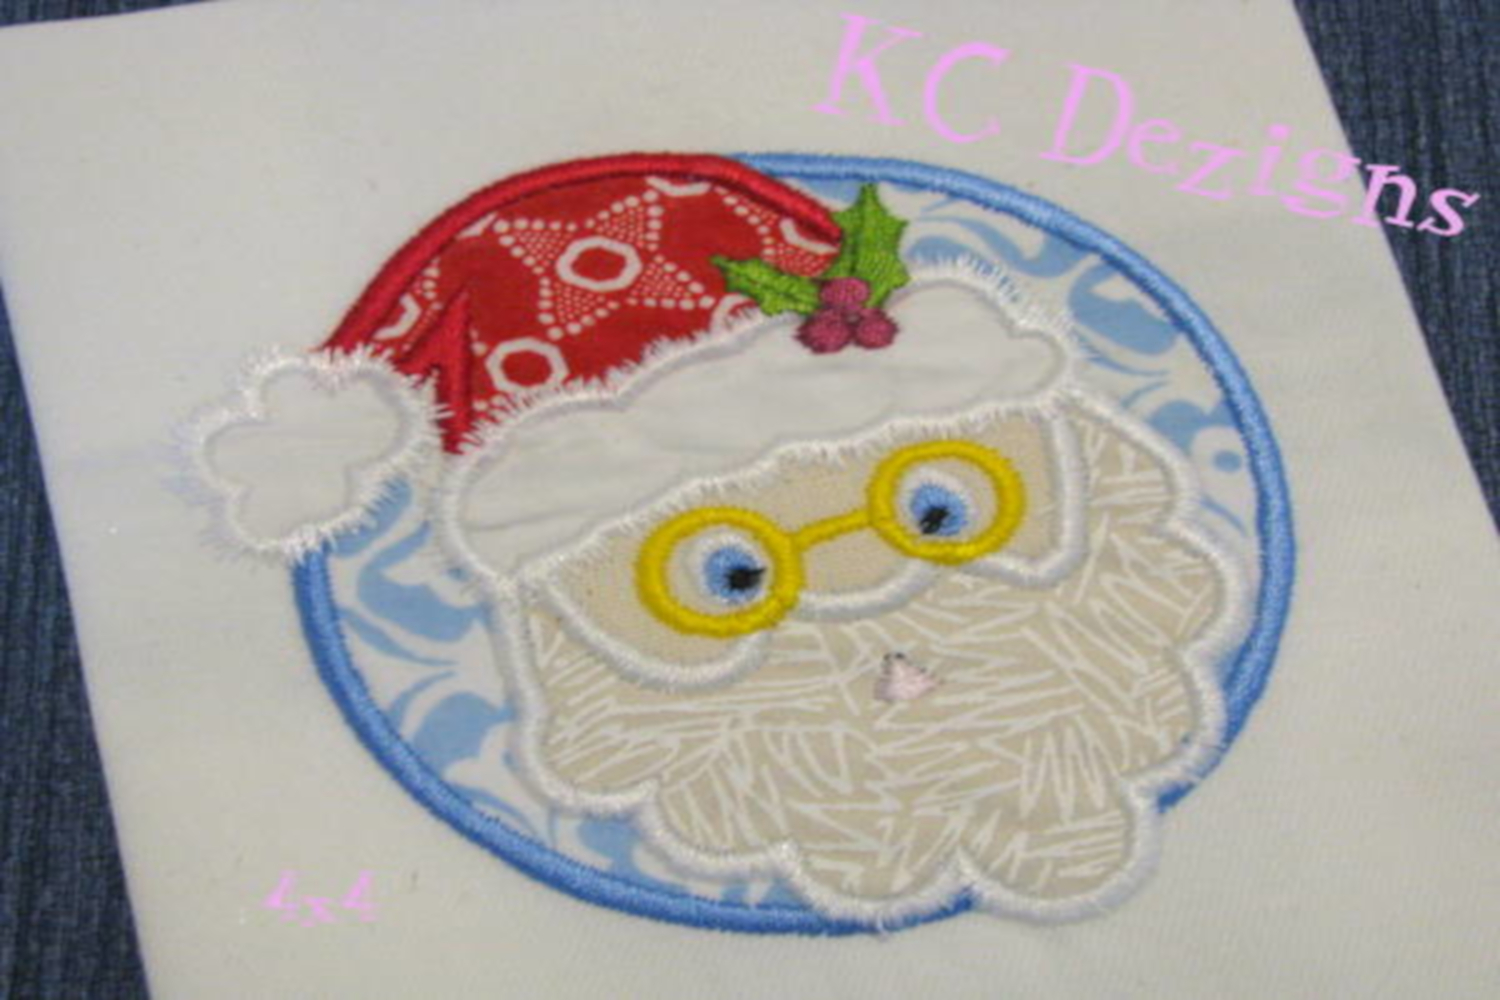 Santa Circle Machine Applique Embroidery Design example image 3